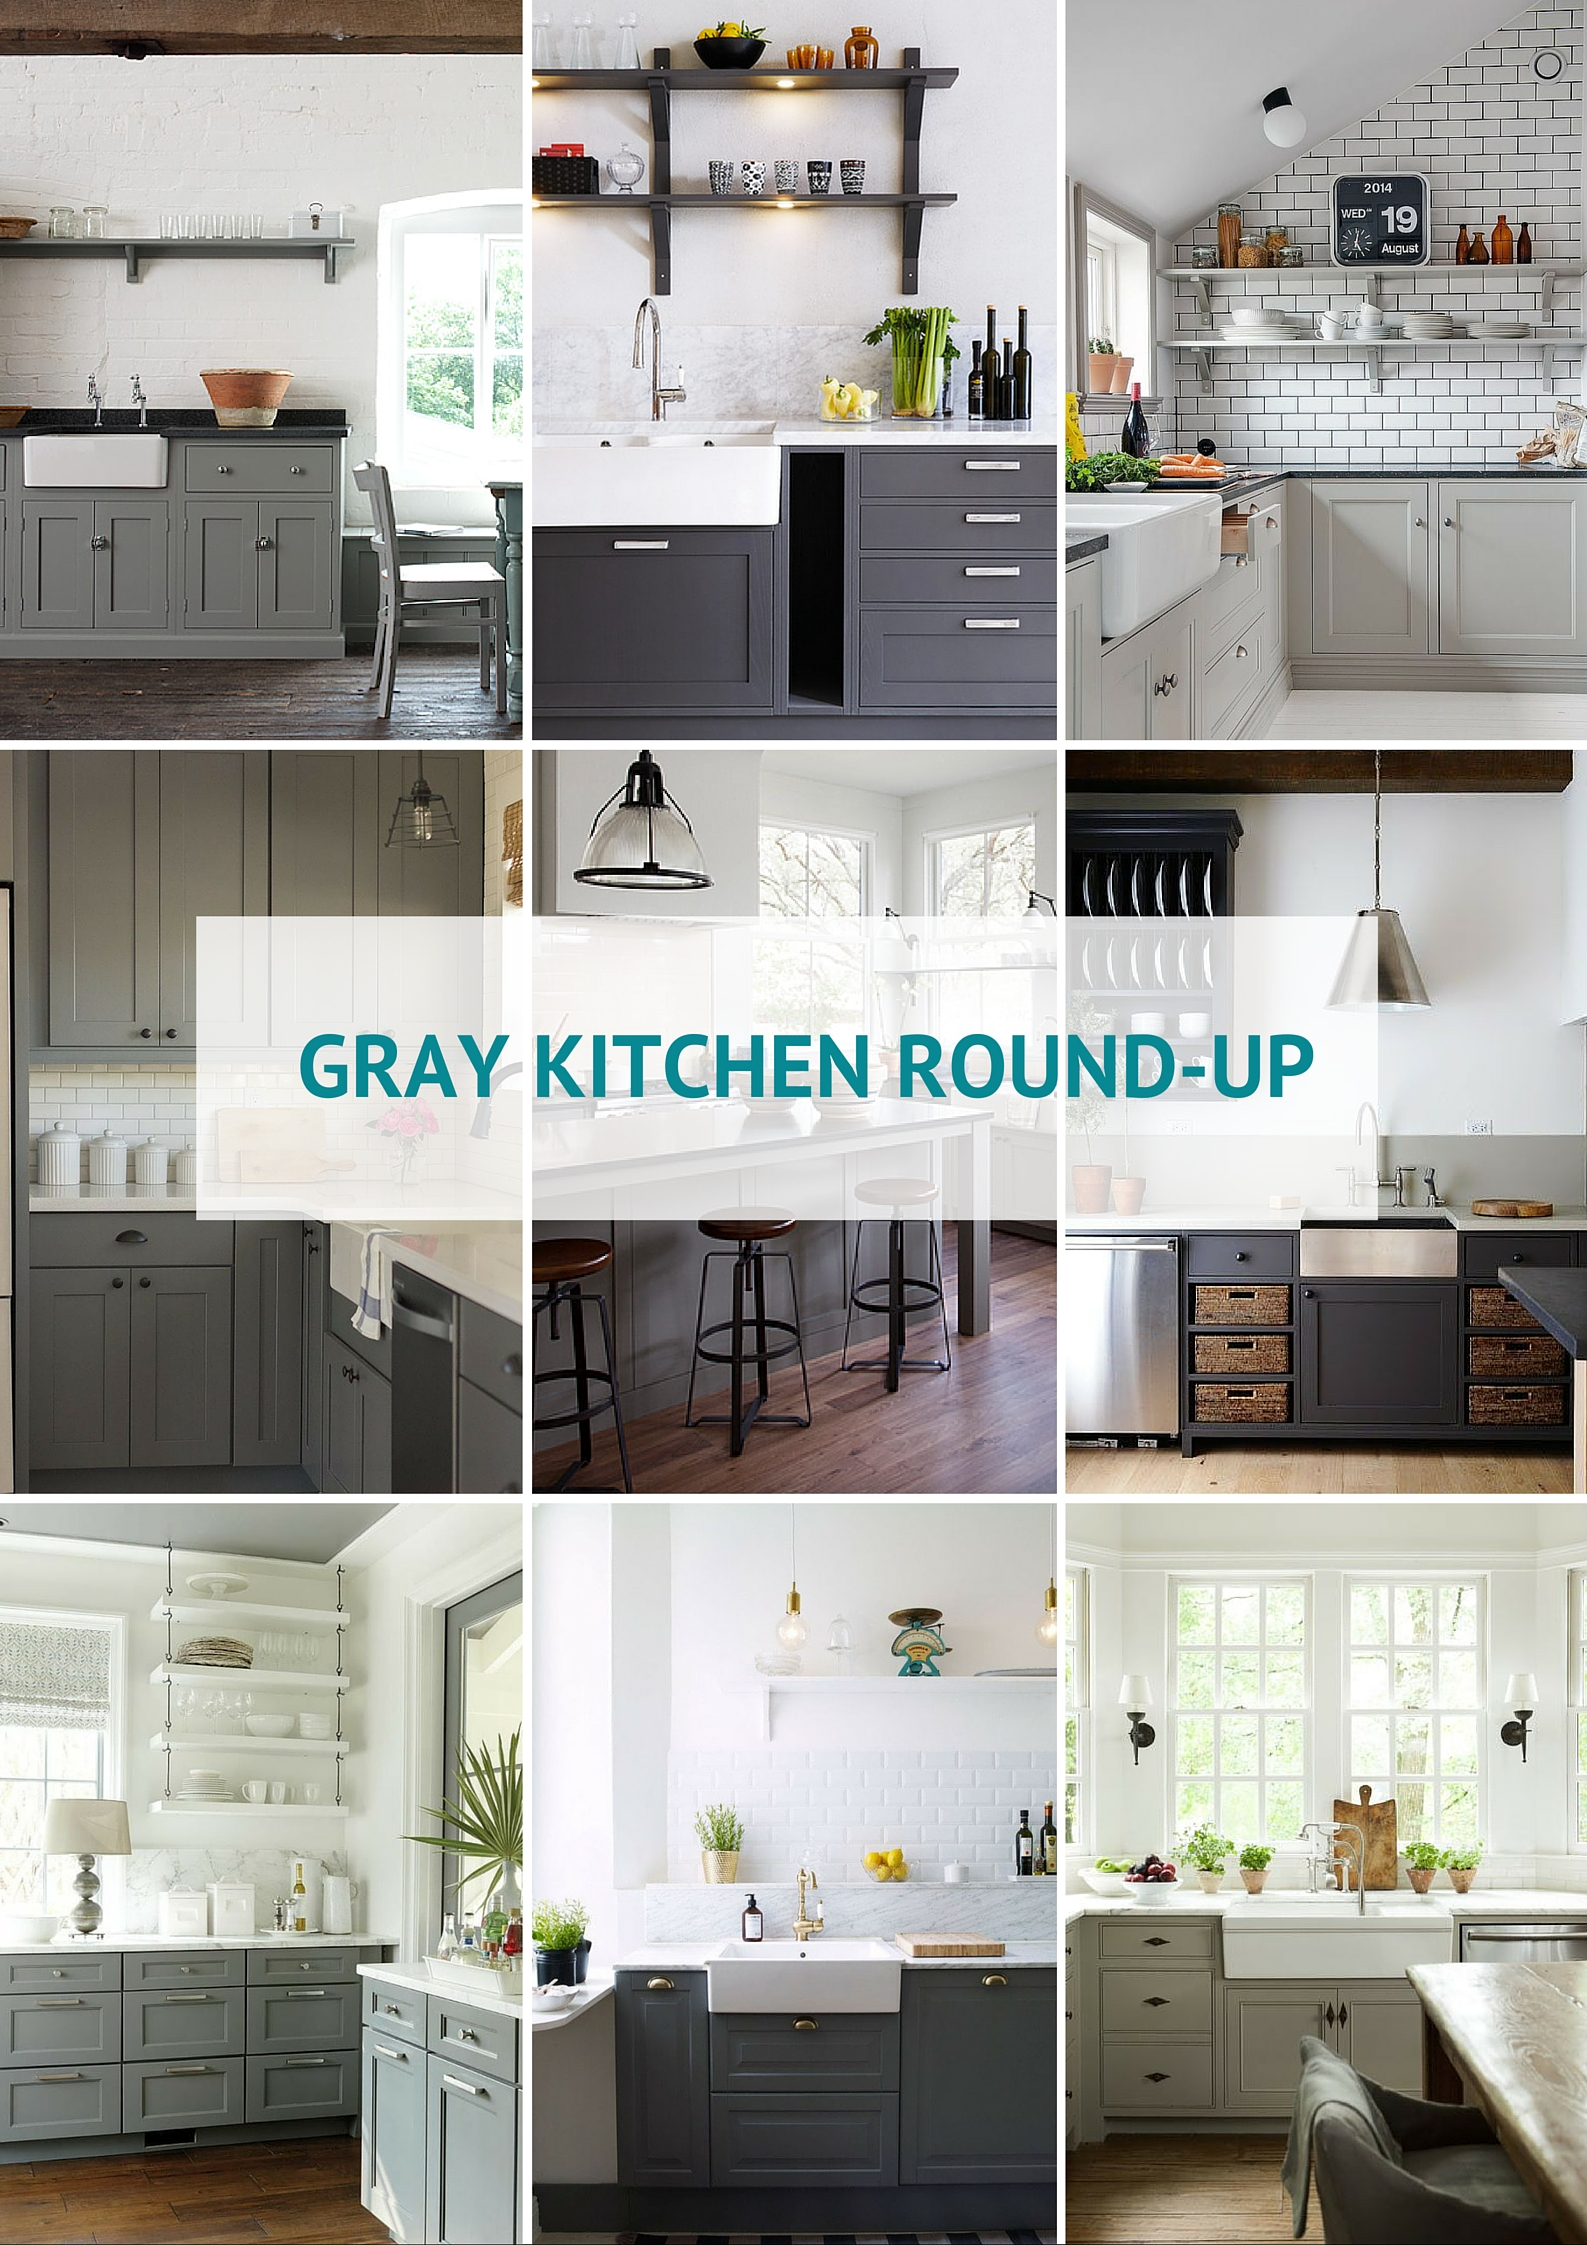 white gray kitchen 2. The great debate when it comes to your kitchen makeover  what colour choose for cabinets or maybe thats just me For 8 whole months and 3 years Gray Kitchen Round Up Kassandra DeKoning